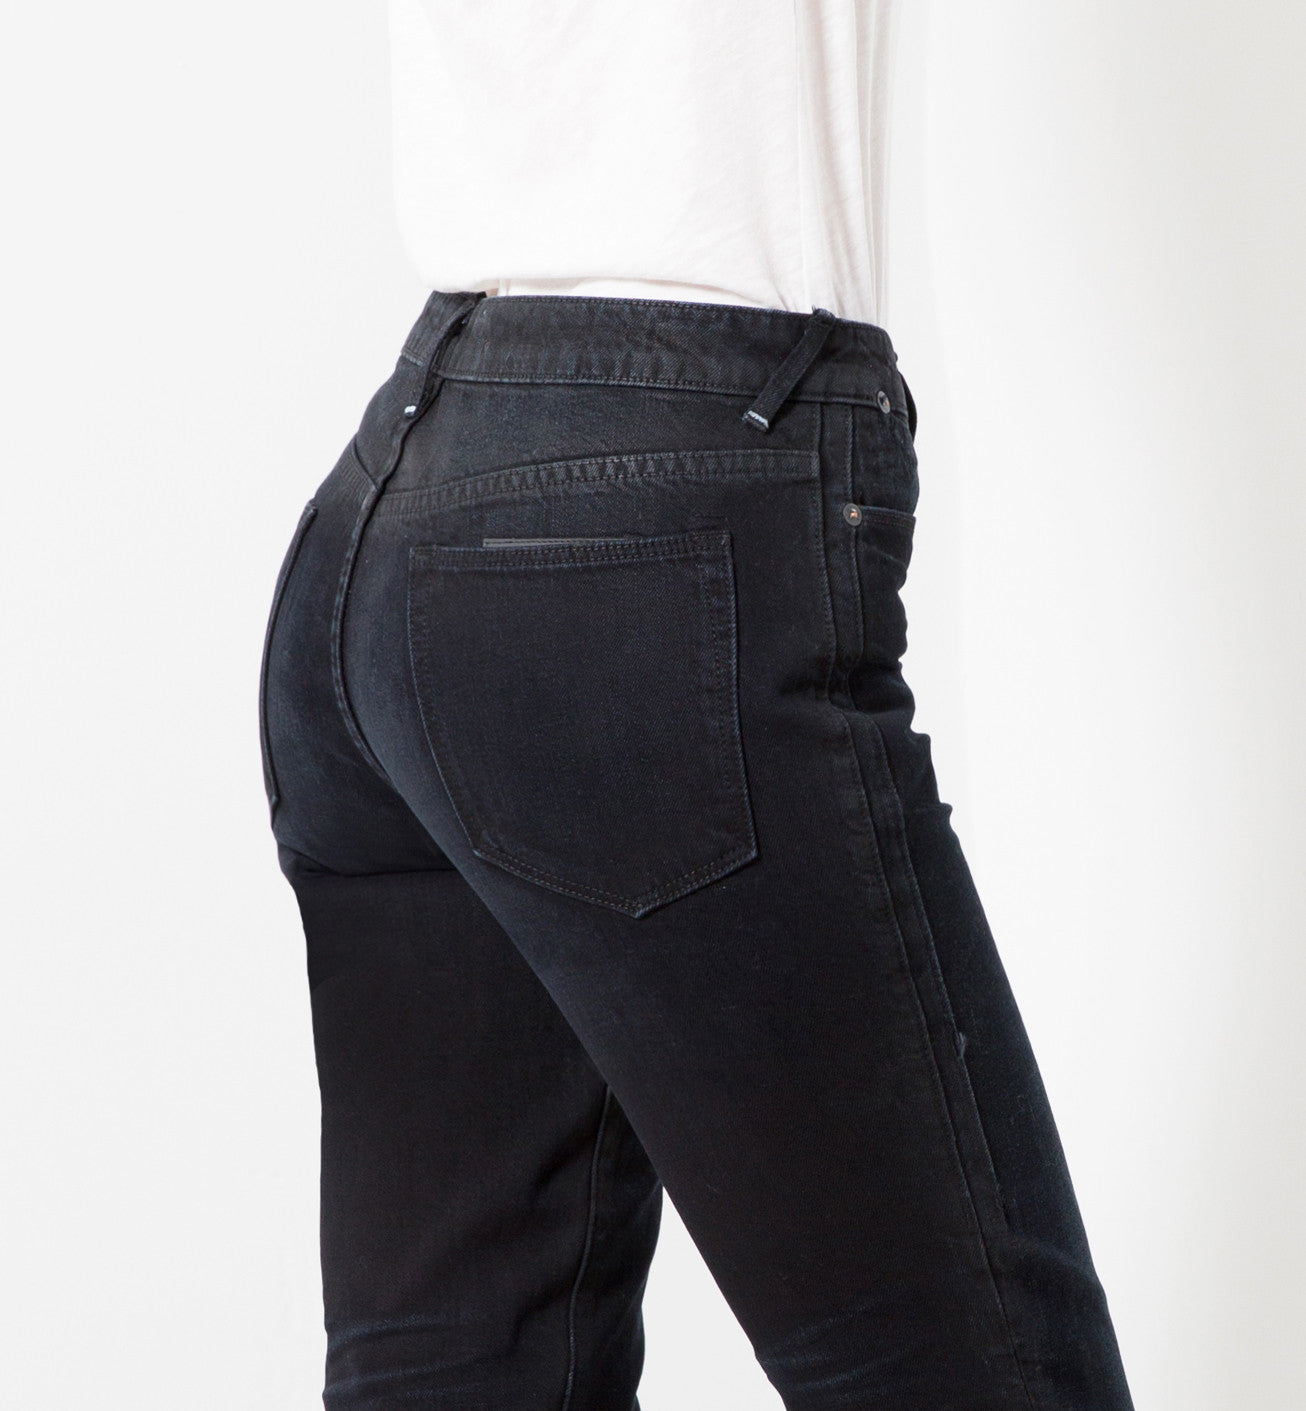 HIGH RISE SLIM in DIP | MADE TO ORDER